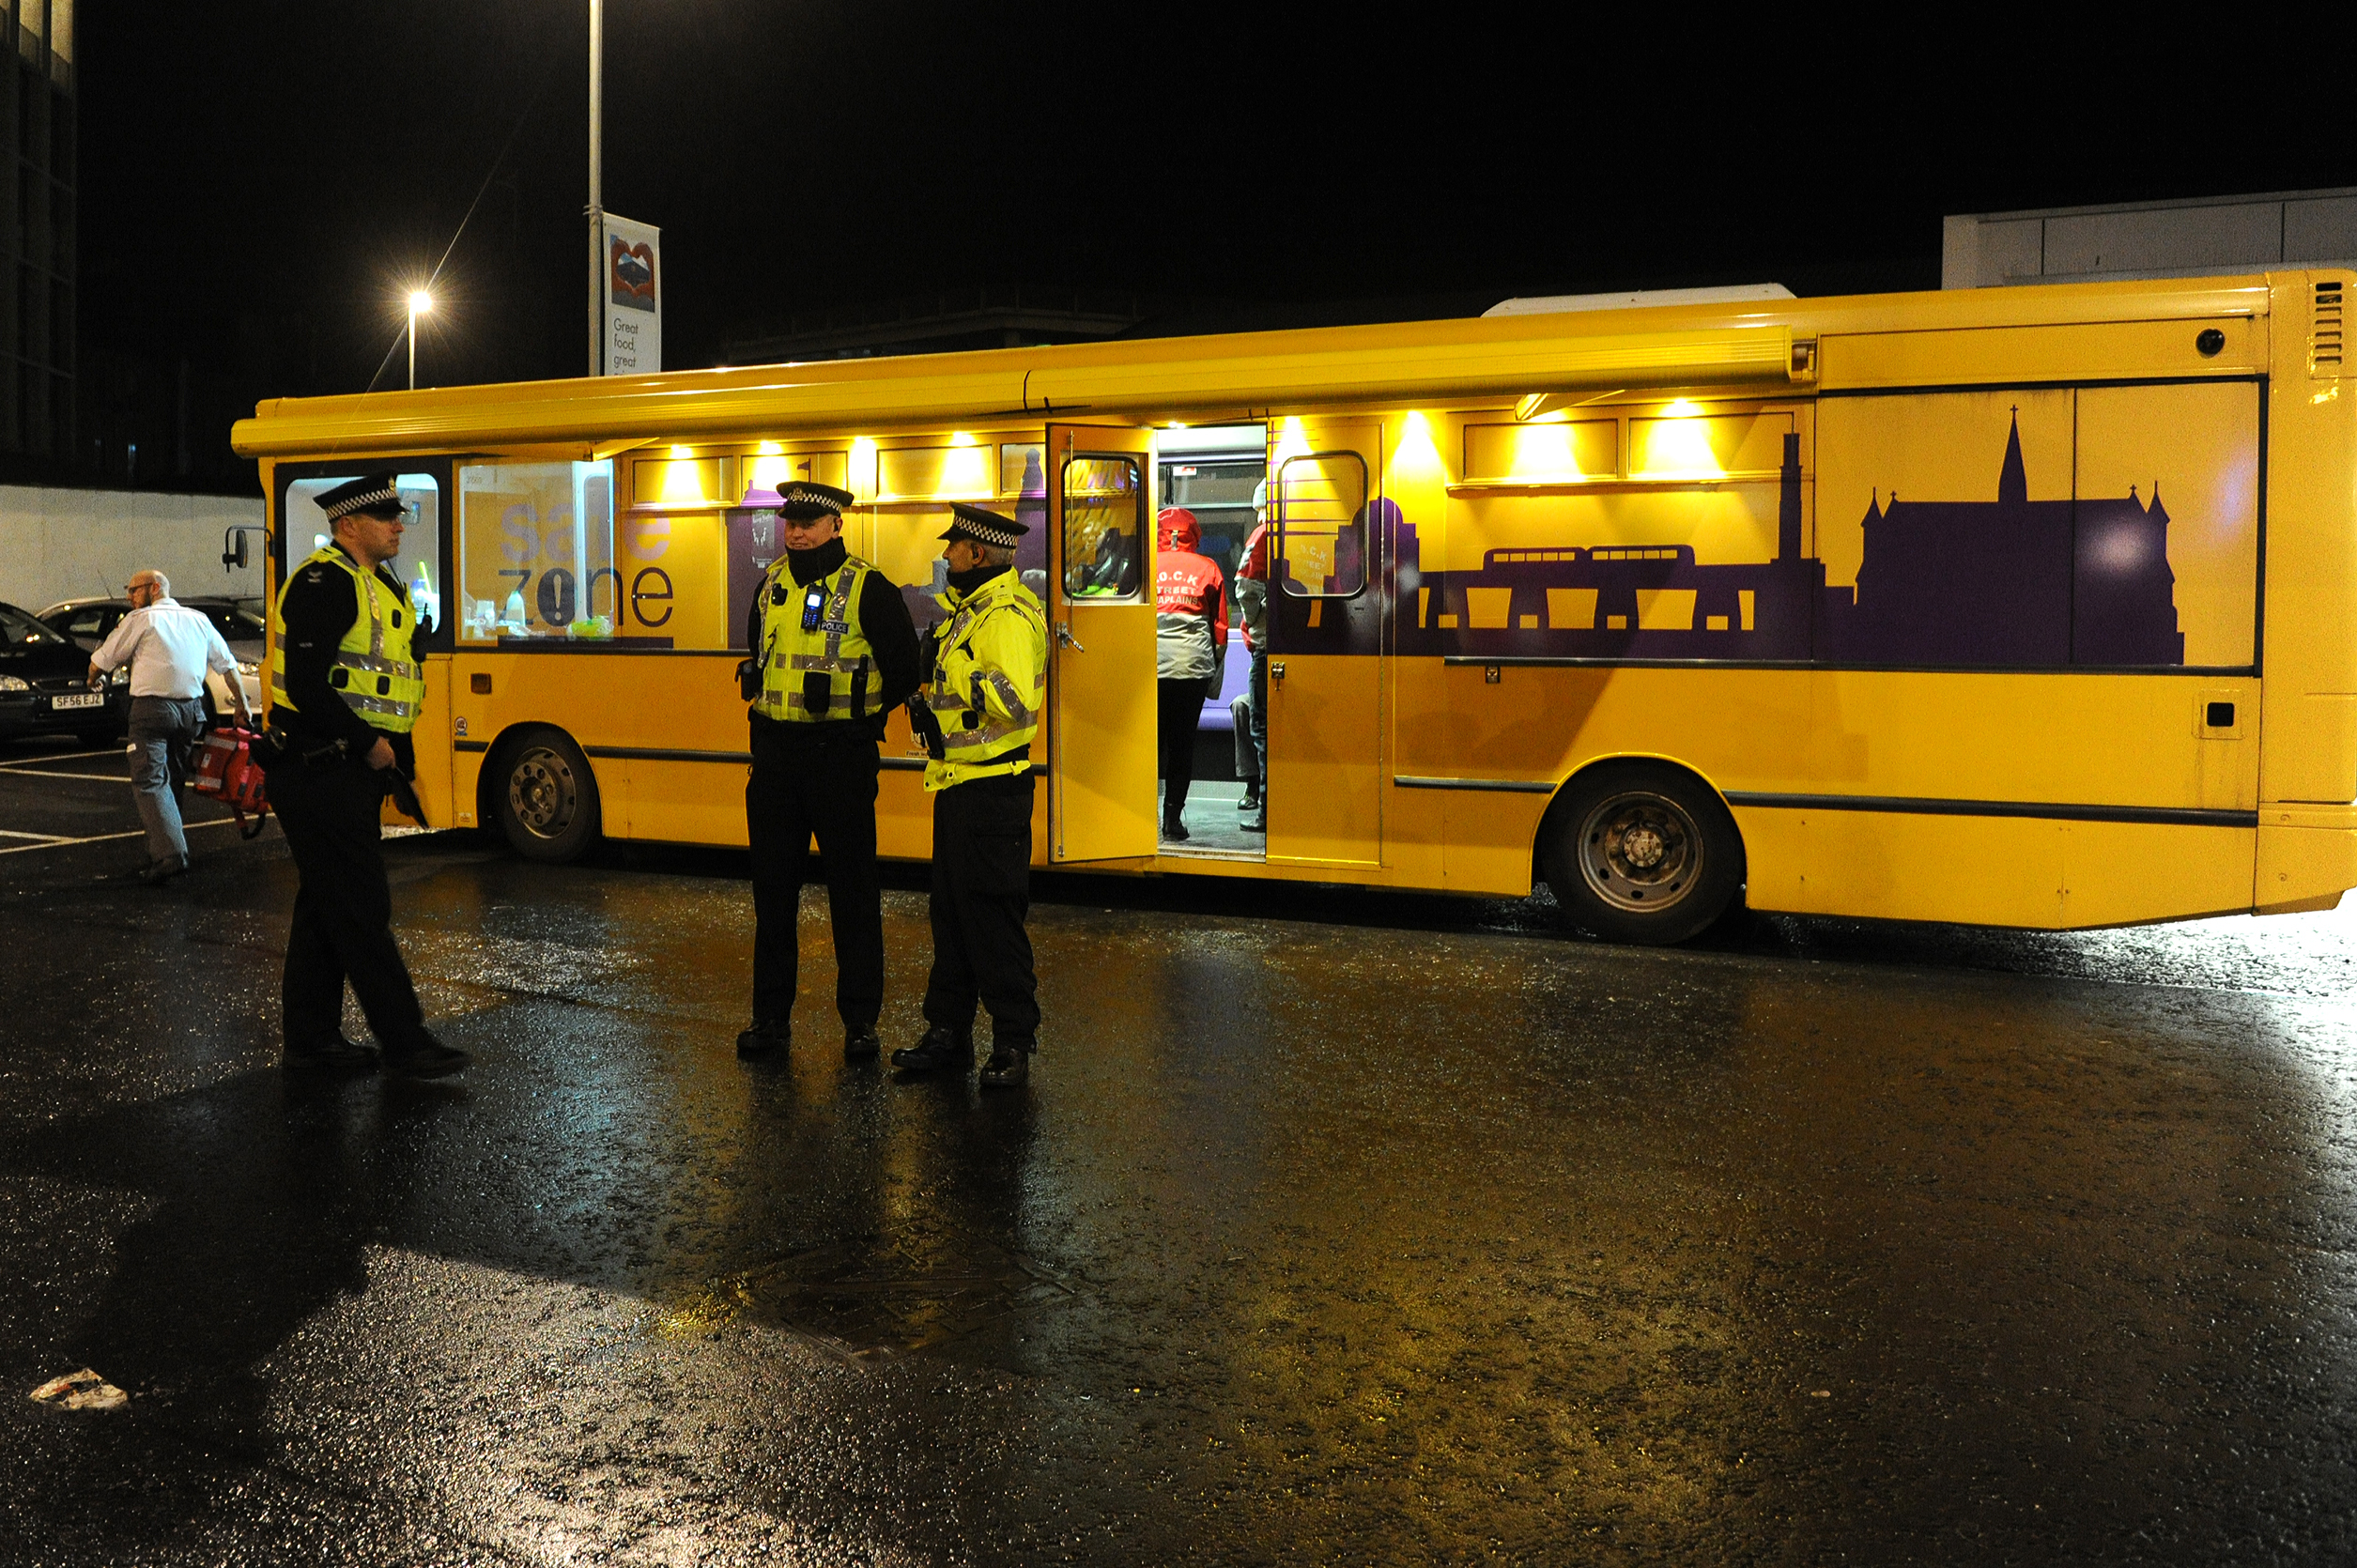 The incident happened after Waldron threatened officers on the Safe Zone bus in Dundee city centre